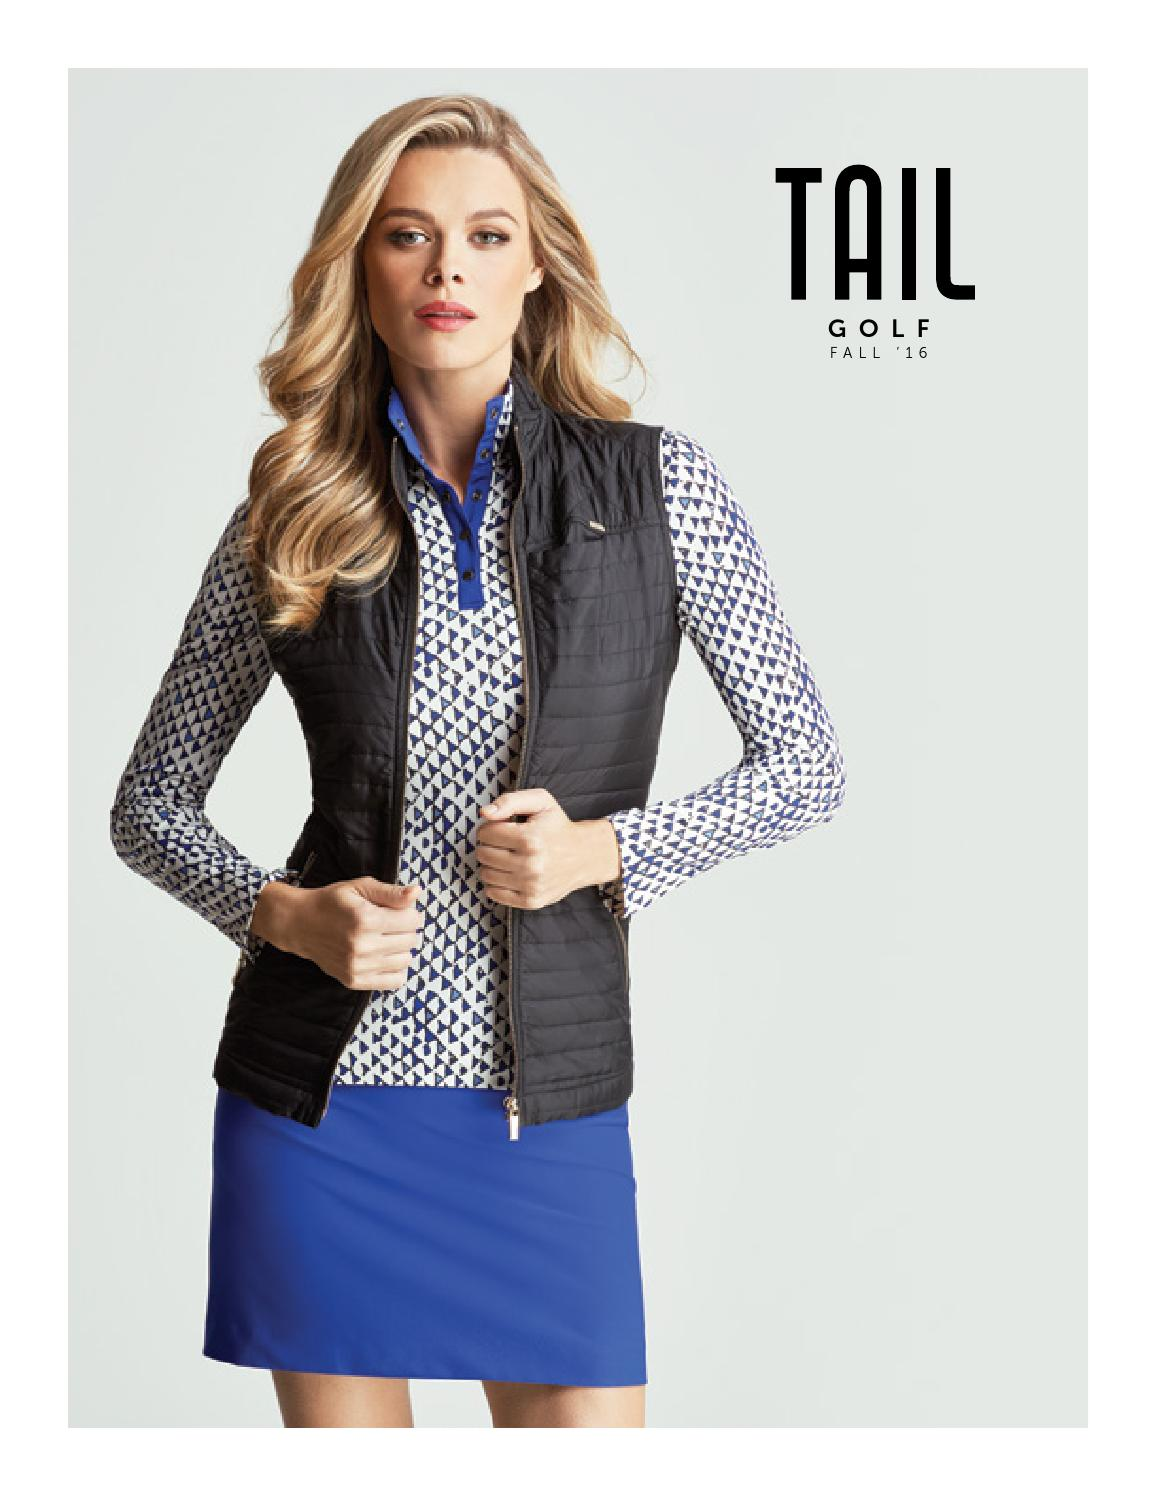 tail fall 2016 women's golf apparellori's golf shoppe